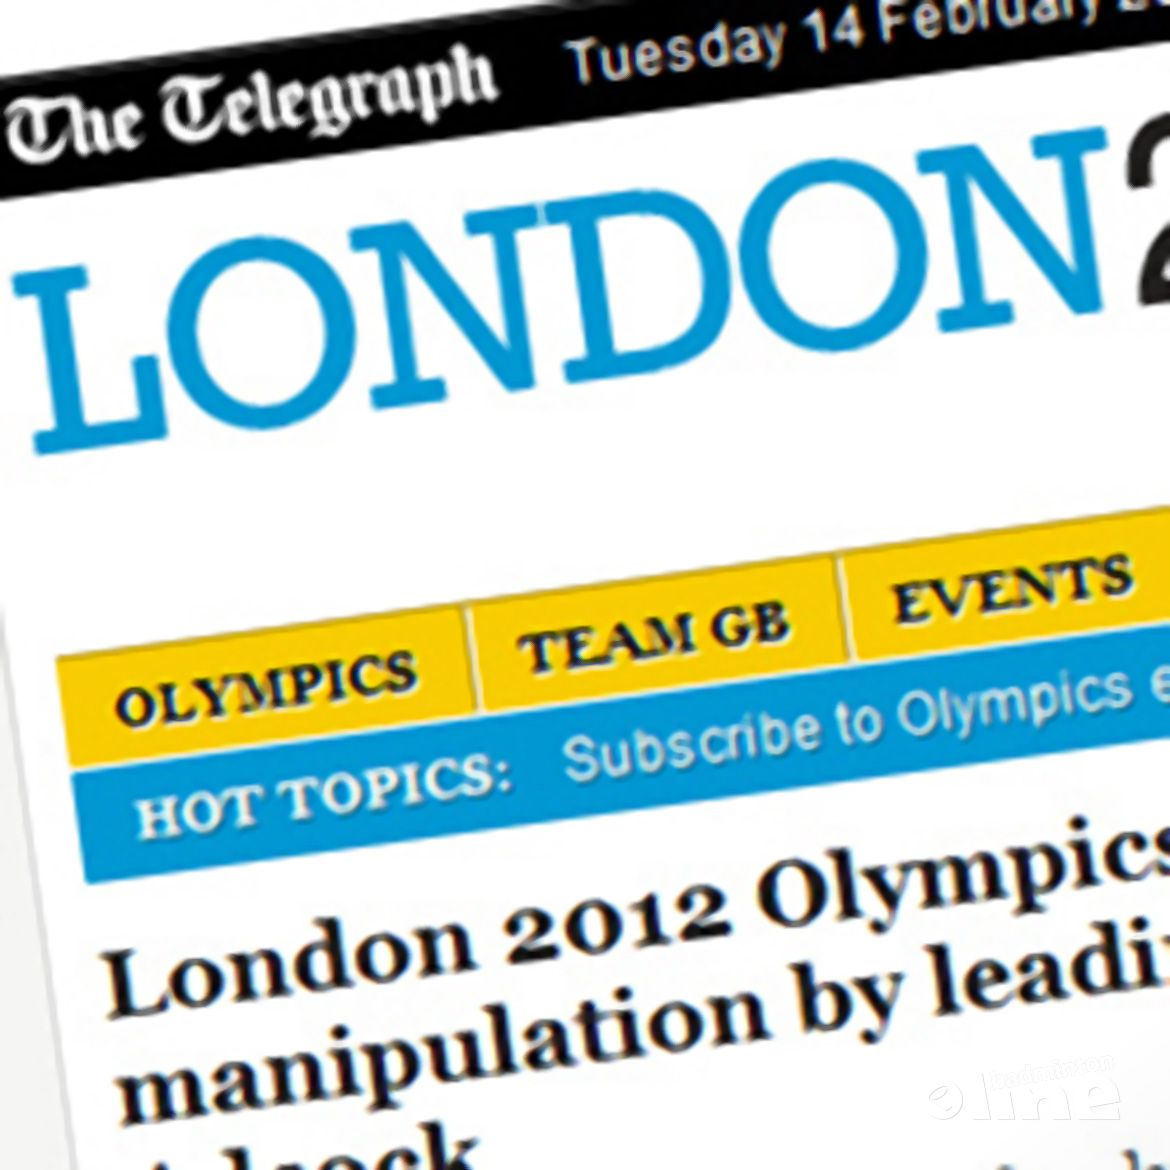 London 2012 Olympics: Chinese accused of match manipulation by leading British doubles player Chris Adcock